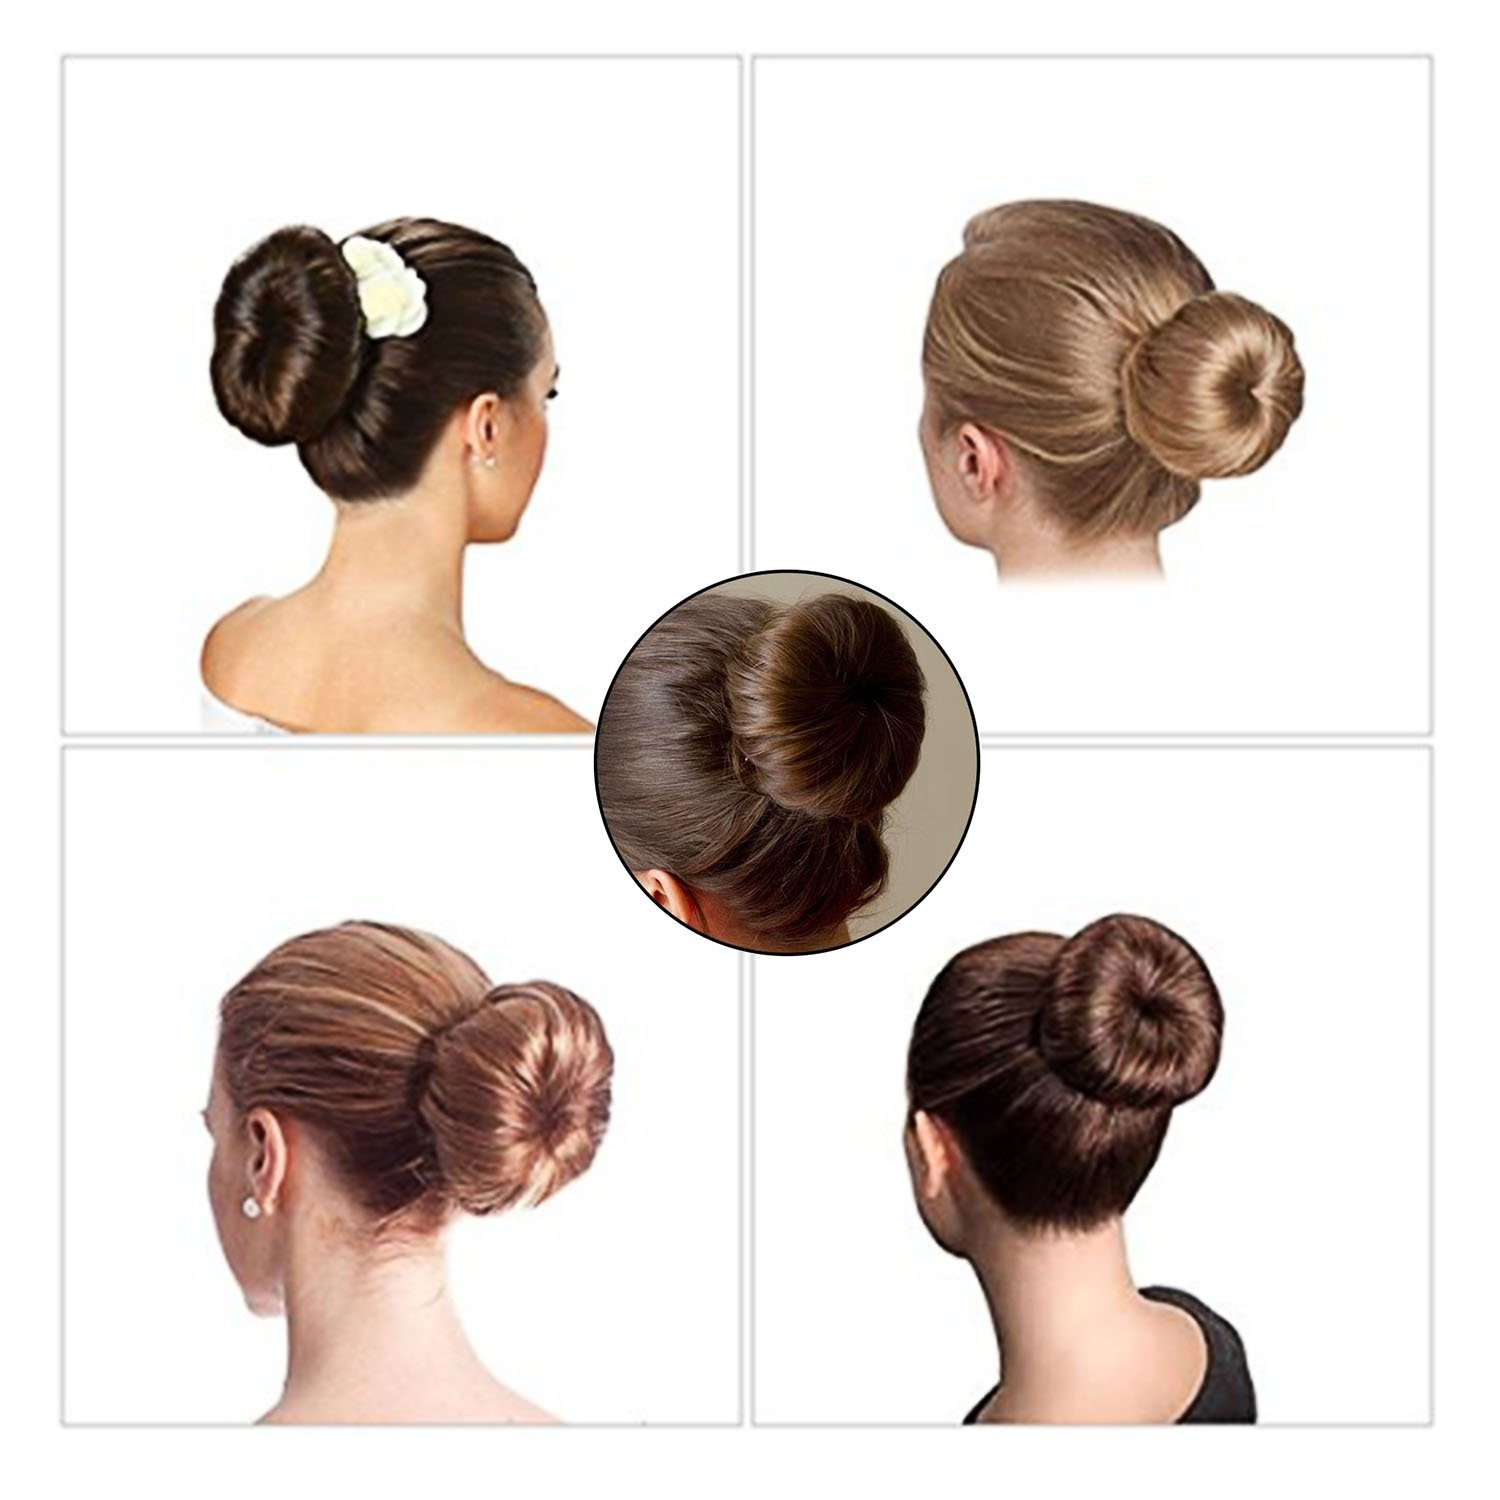 Hair bun maker-3 Pack Hair bun dount+10 Piece Professional Multicolor Plastic Hair Clips+Hair rope, Hair Styling Making DIY Curler Roller Hairstyle Tools by haomiao (Image #7)